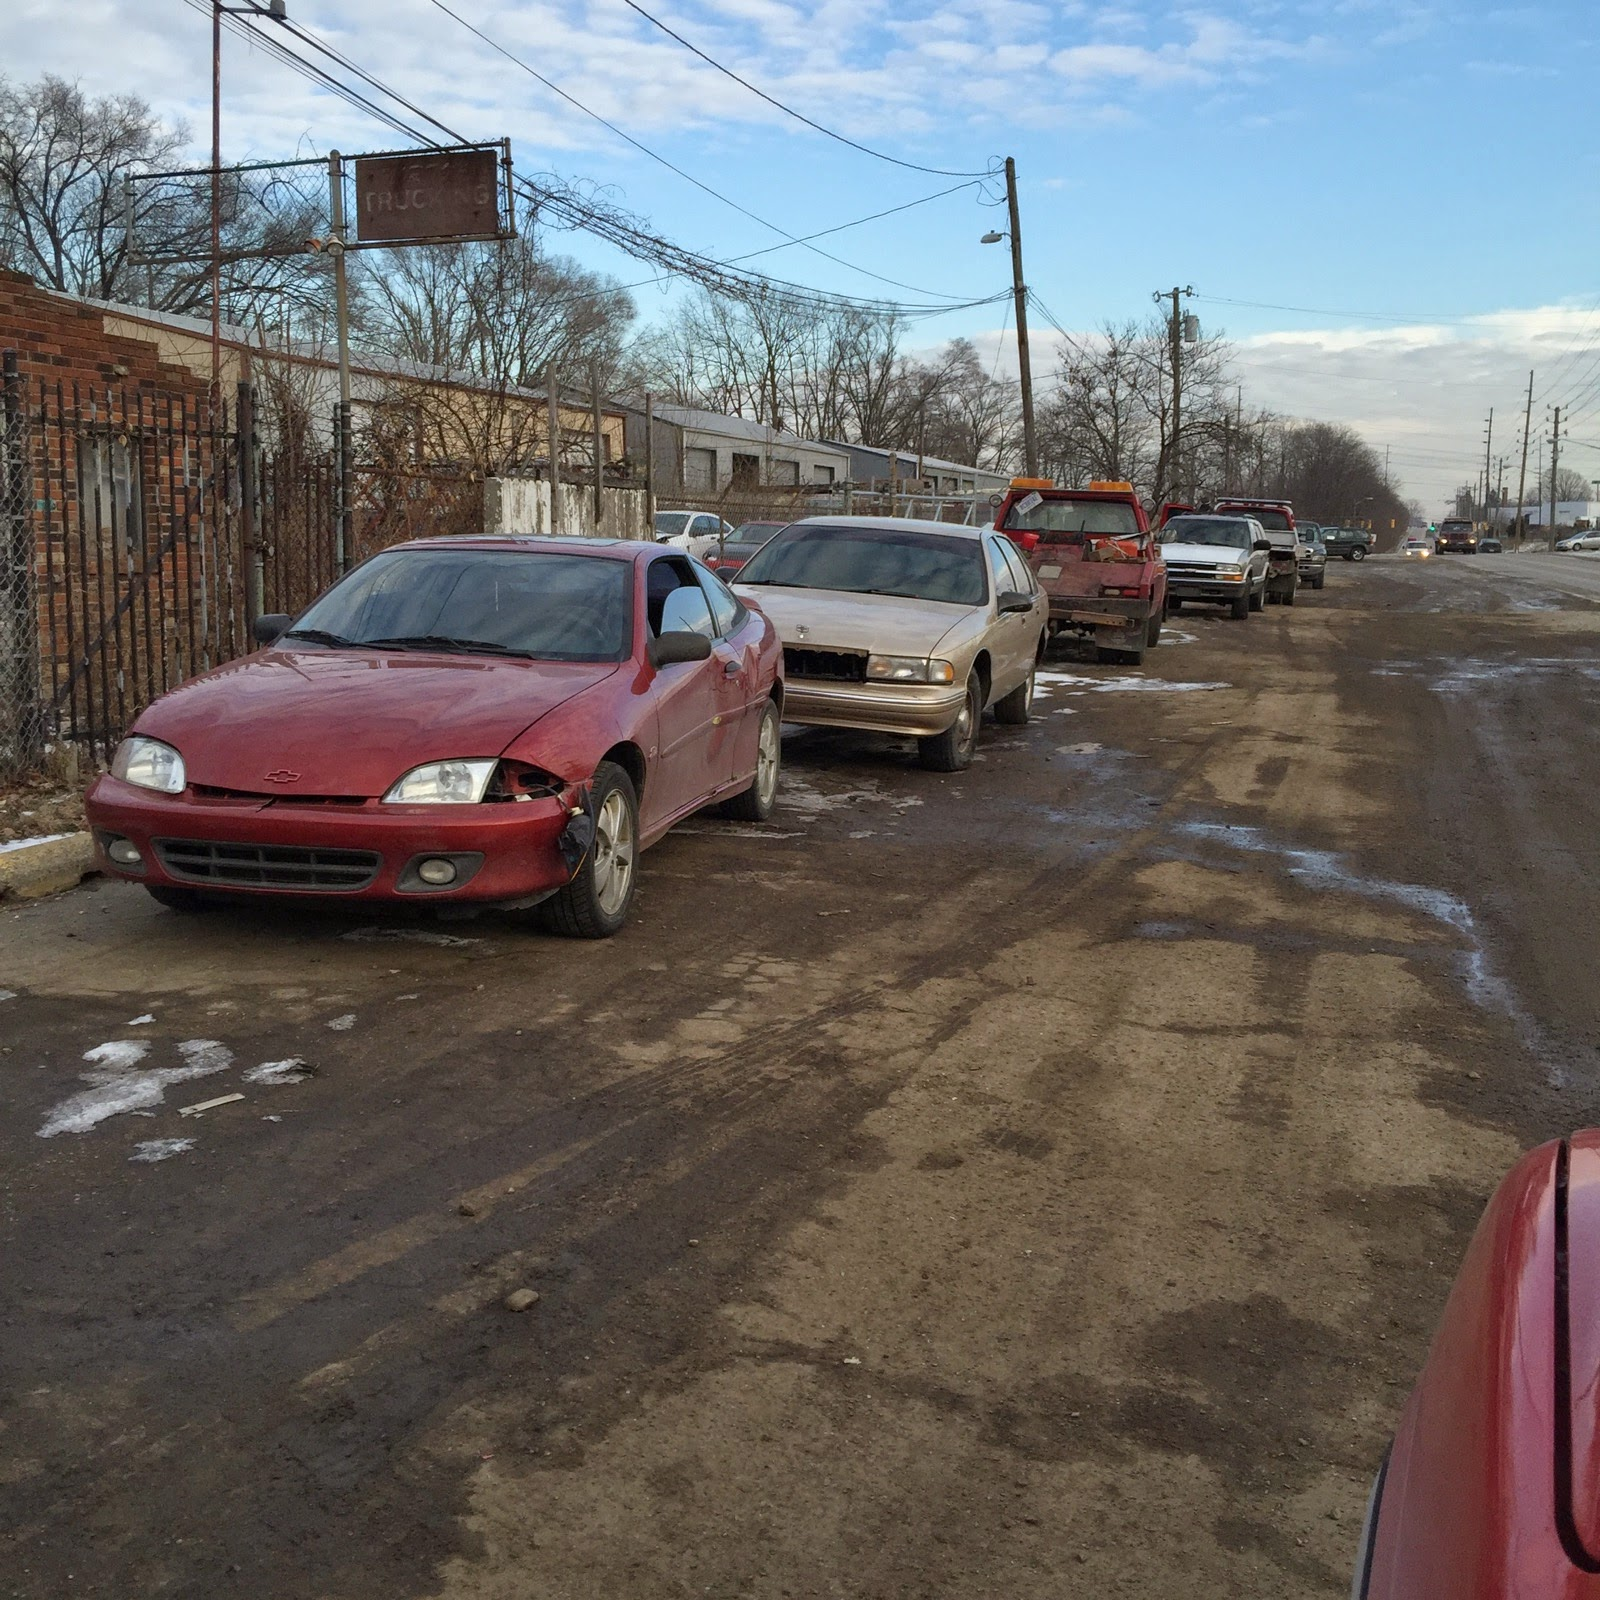 Cash for Cars Indianapolis: Junk Car Prices to Drop in Indianapolis